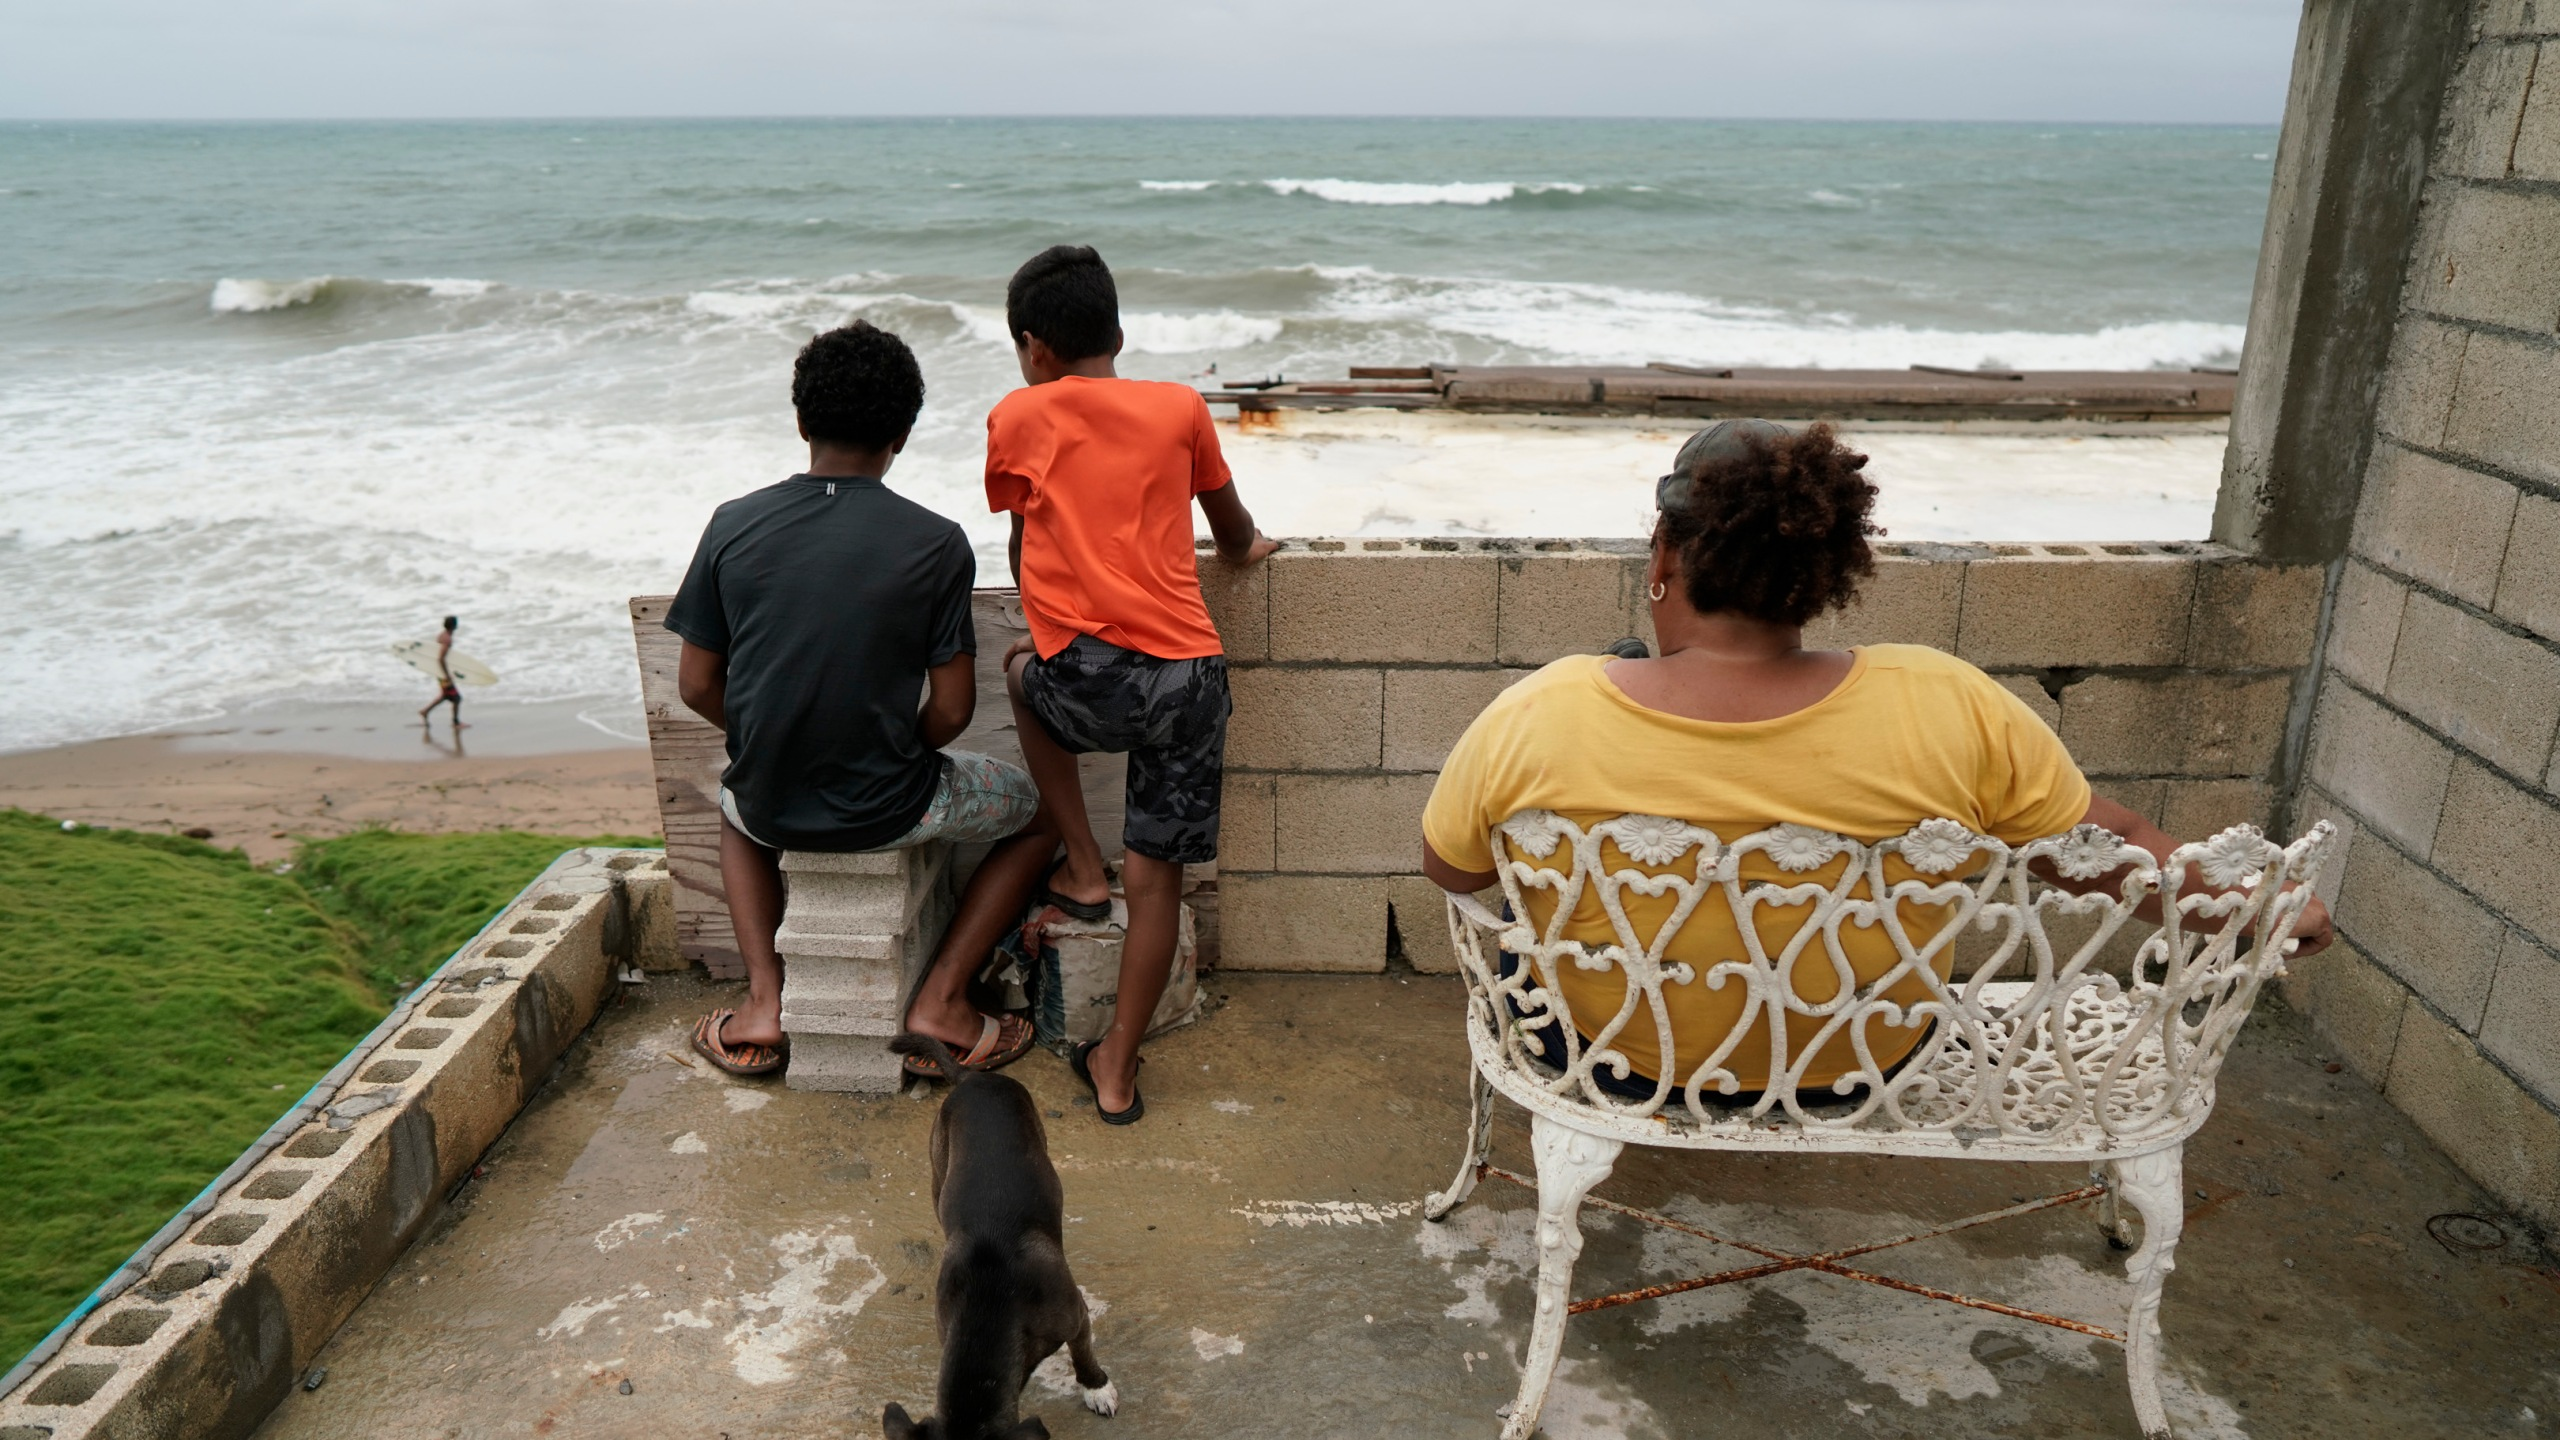 People look out to sea as Tropical Storm Karen approaches in Yabucoa, Puerto Rico, Sept. 24, 2019. (Credit: ERIC ROJAS/AFP/Getty Images)